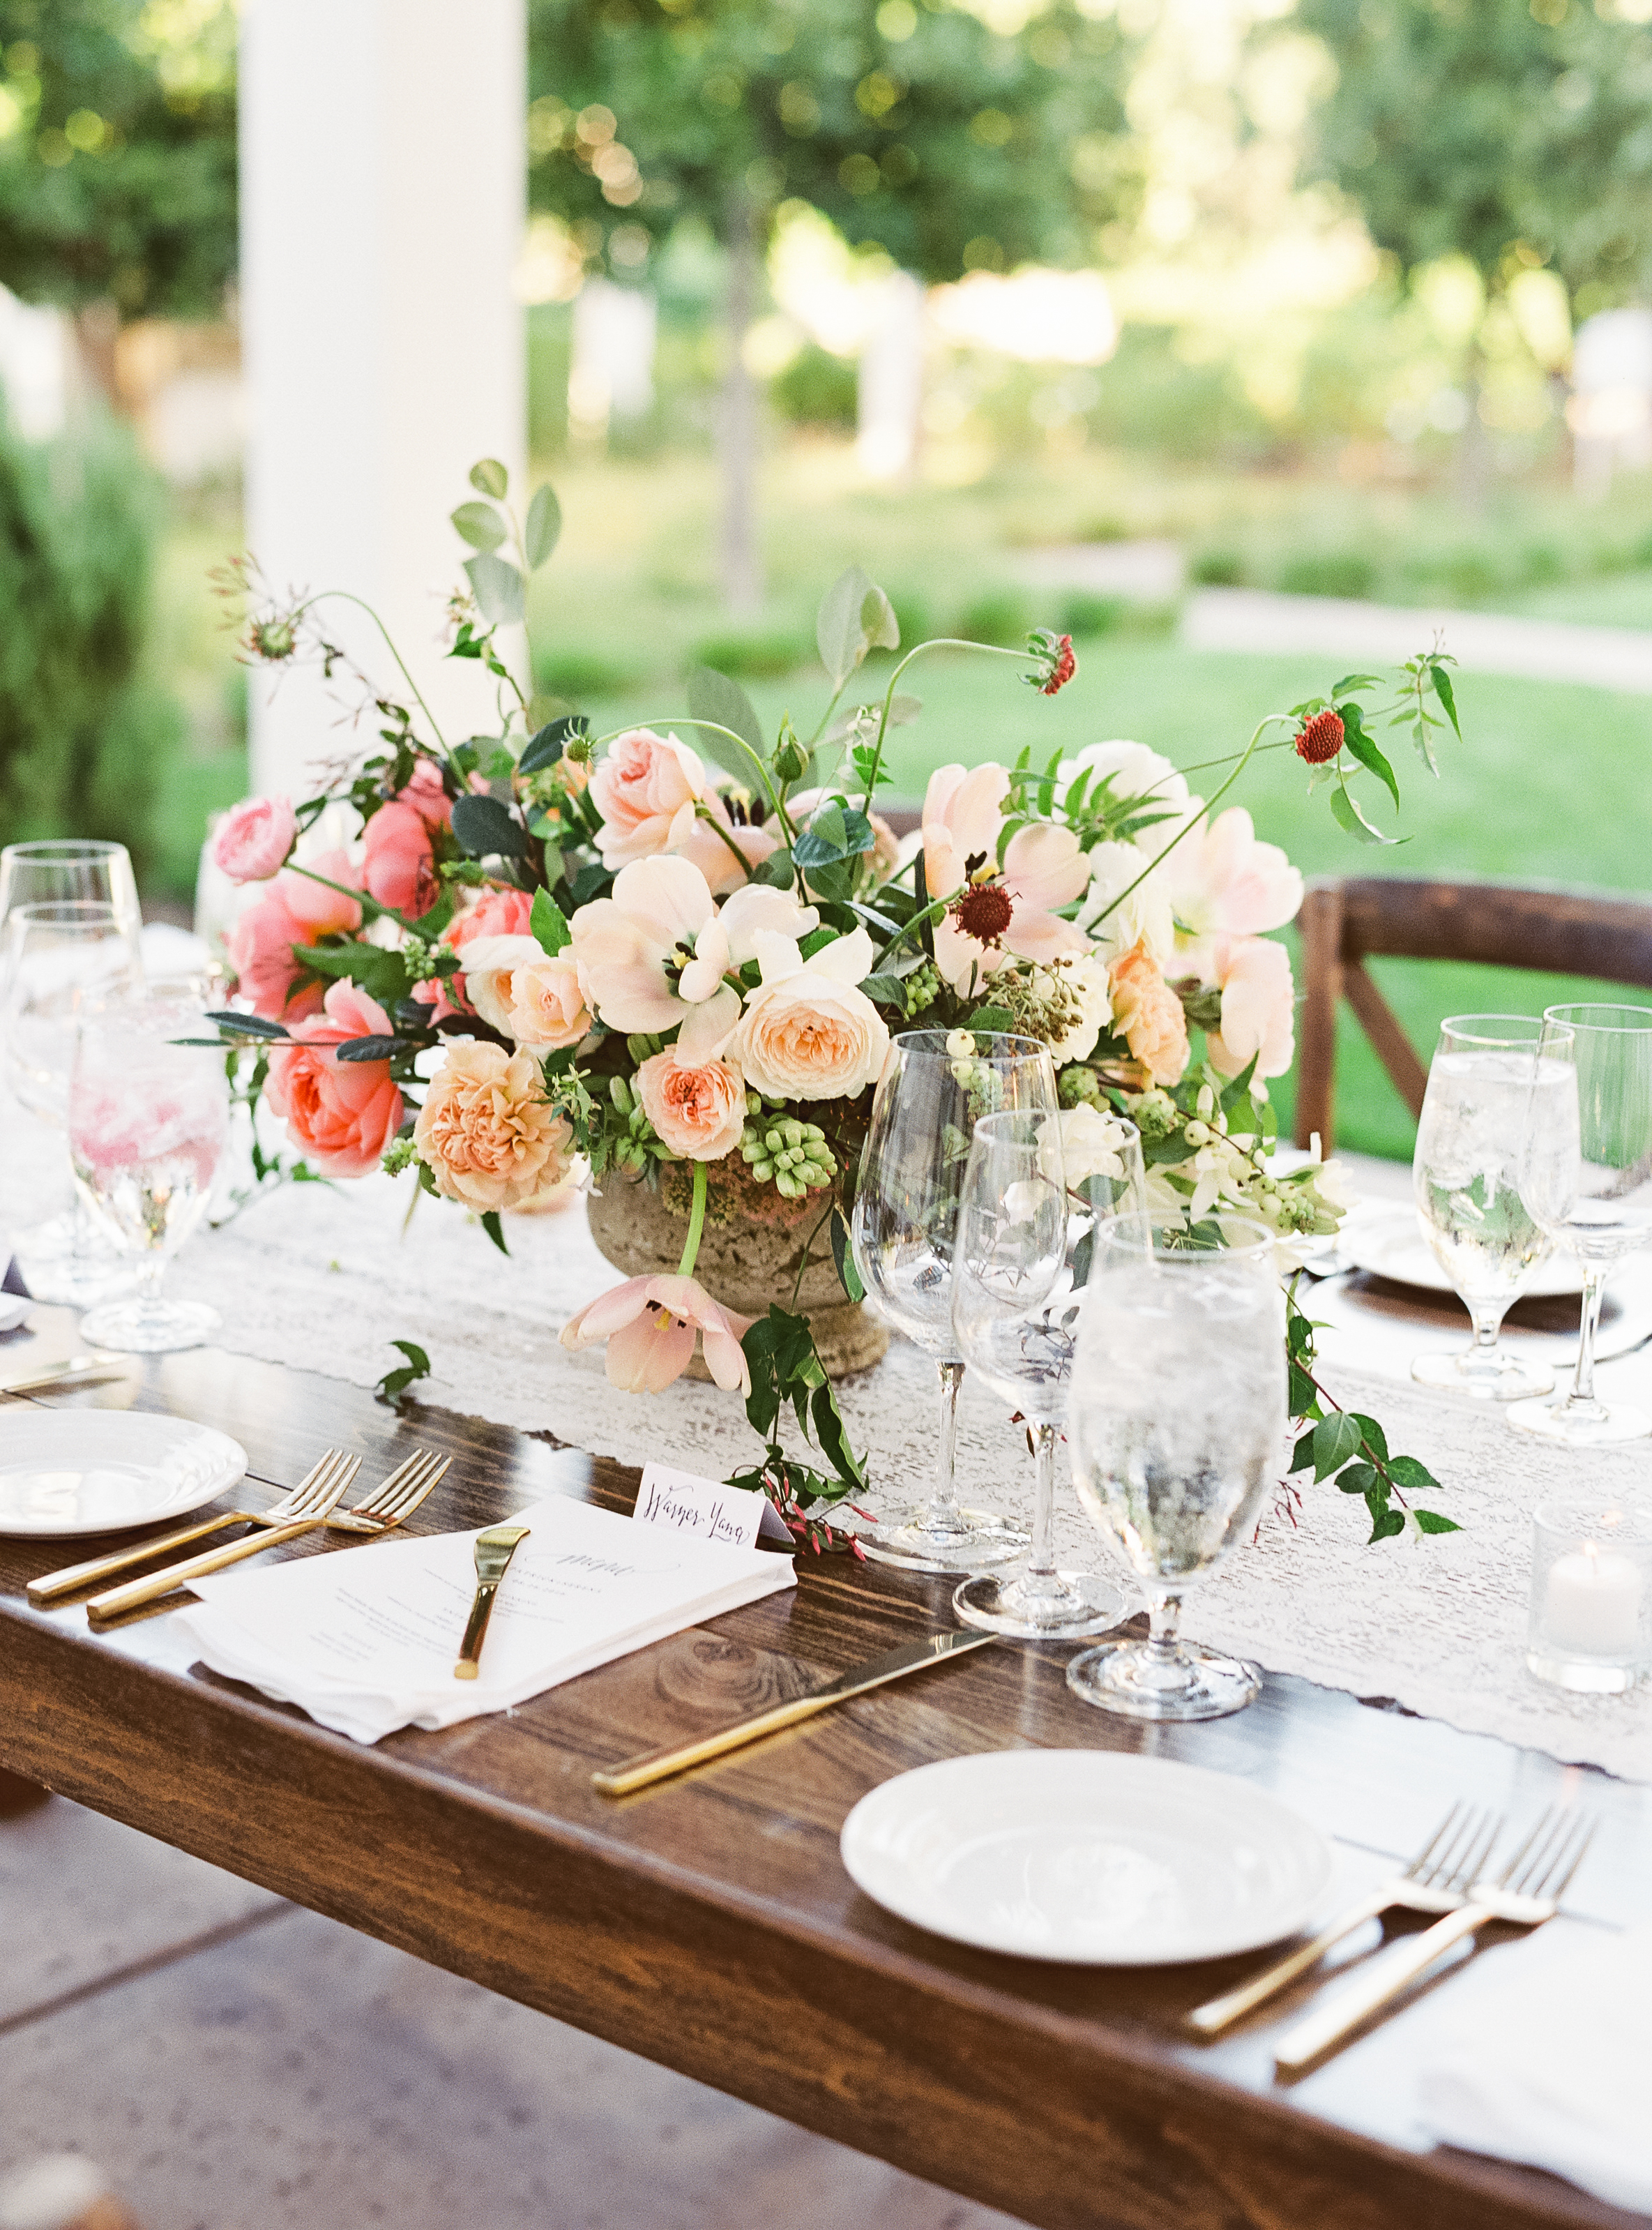 Napa Valley Wedding | Michele Beckwith | Chinese Wedding | Vineyard Wedding | Fine Art Wedding Blog | Joy Wed | Peach Wedding | Blush Wedding | Organic Wedding Centerpiece | Organic Wedding